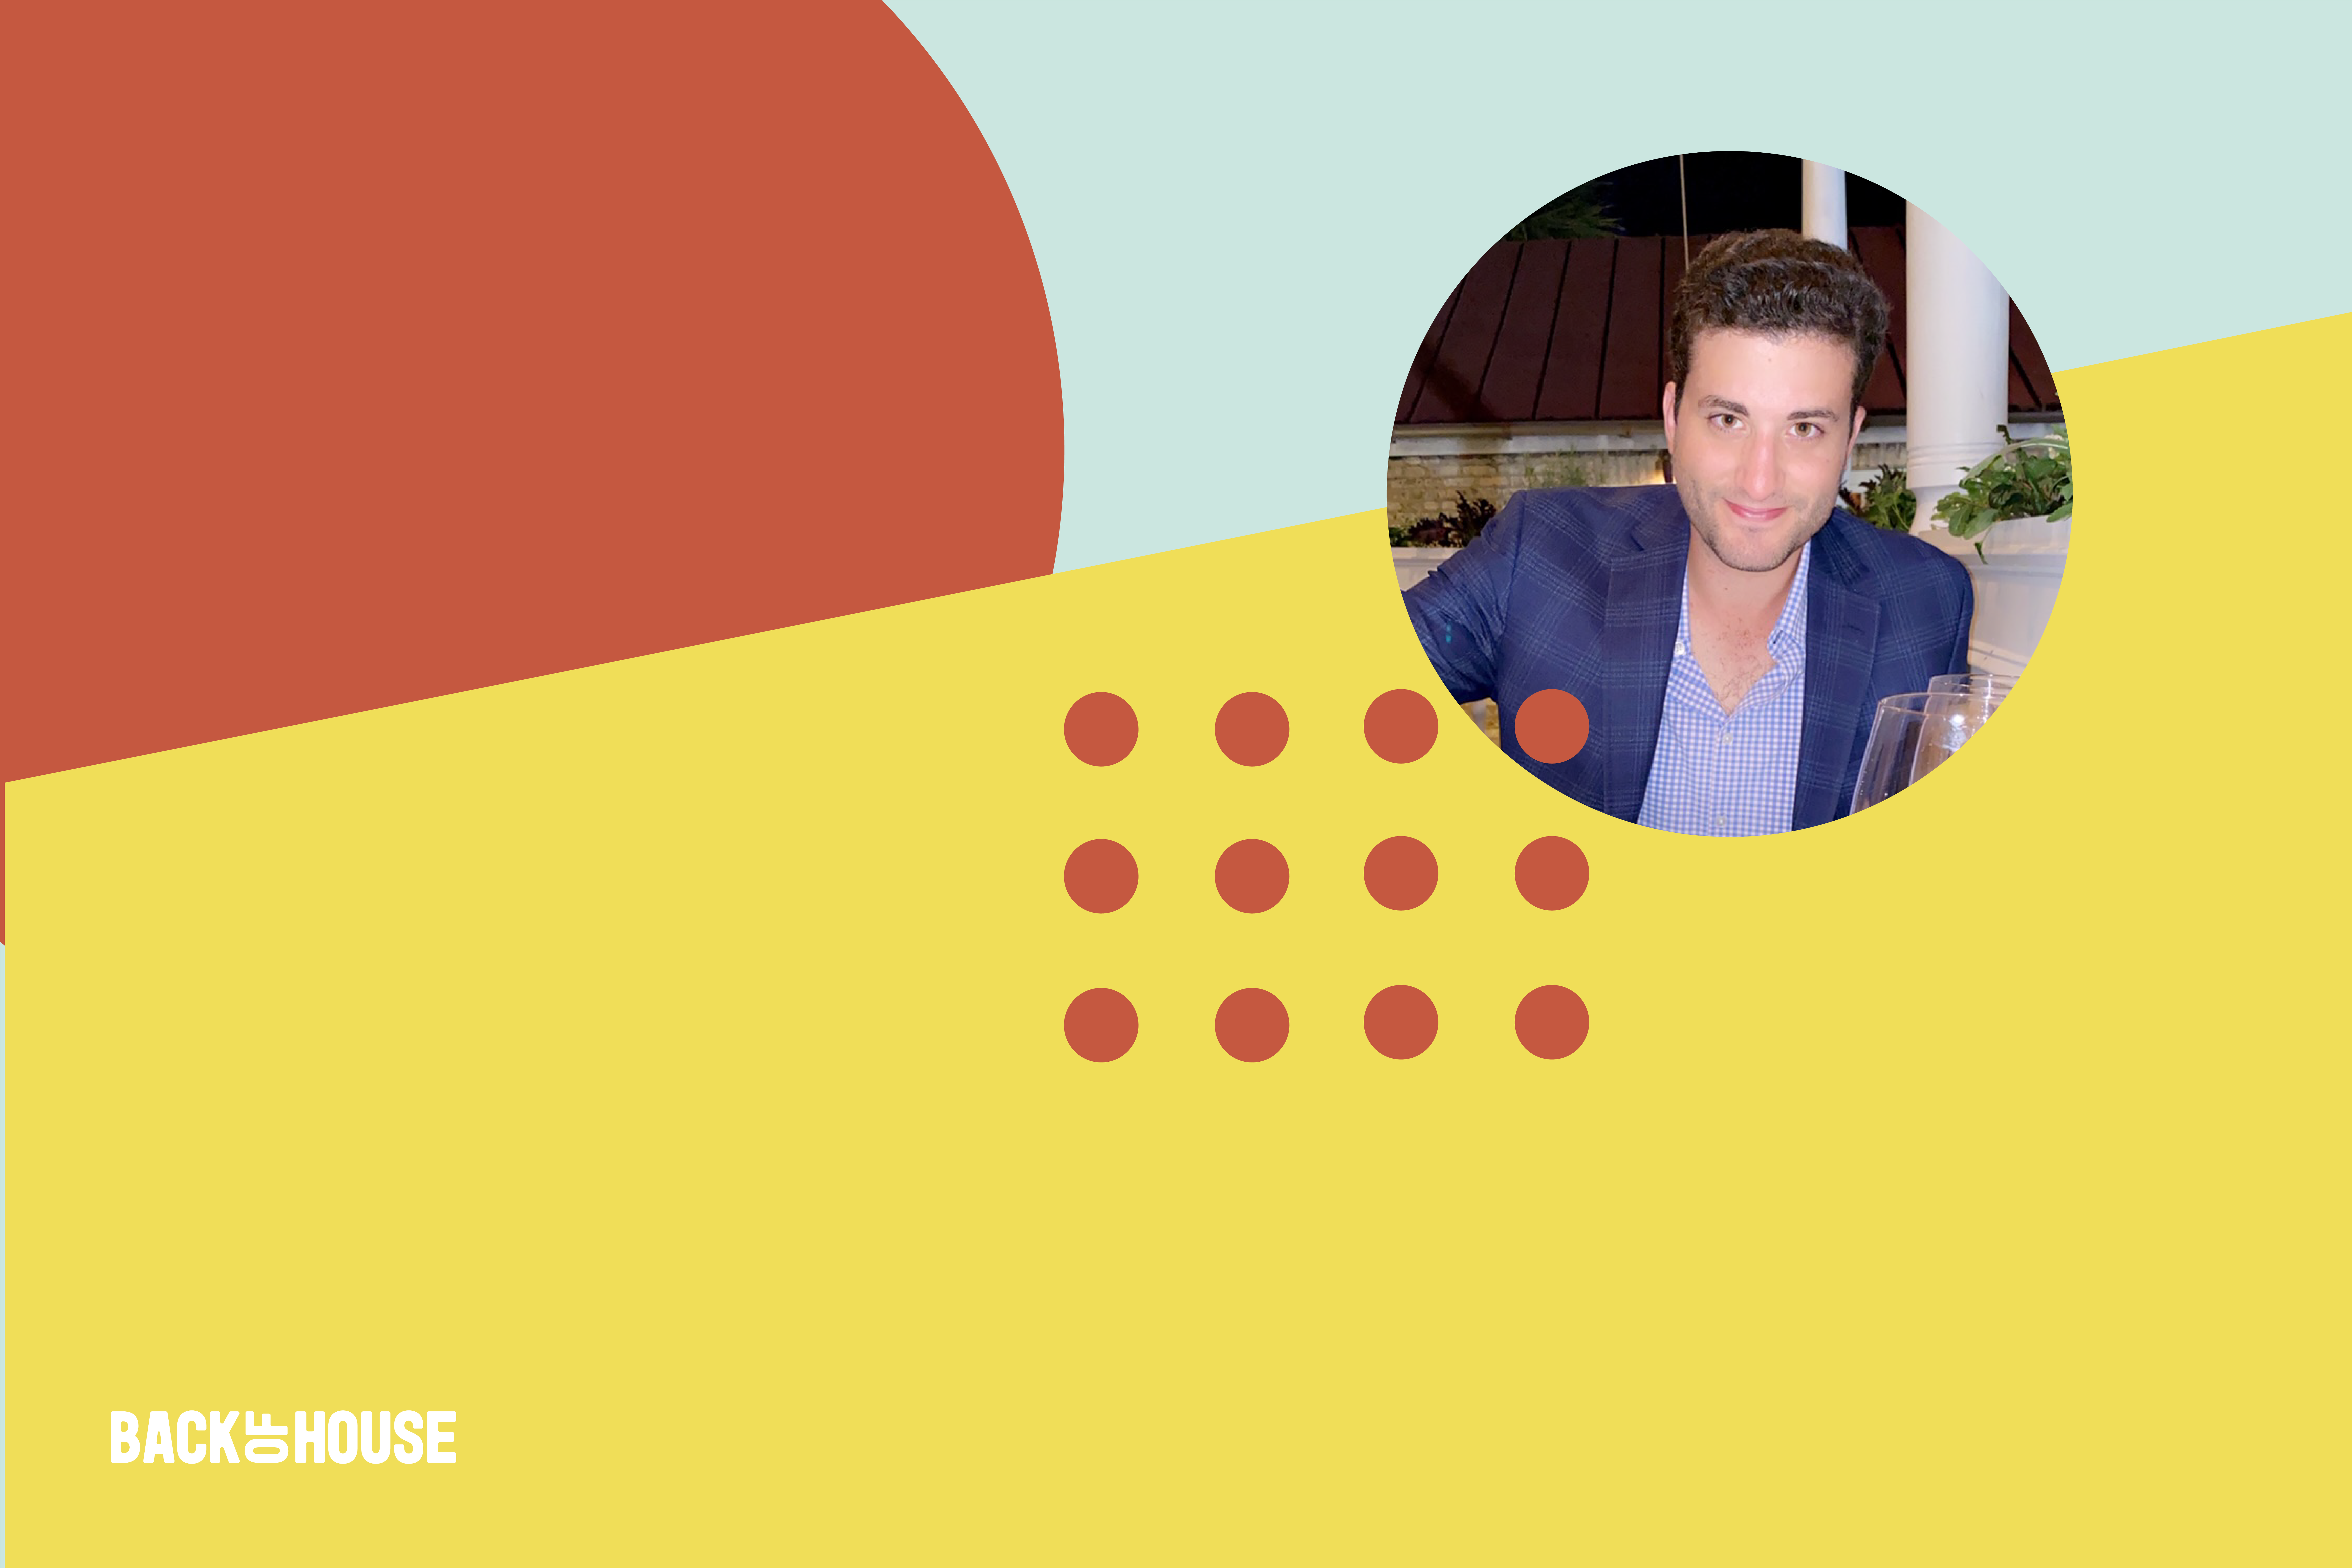 goDutch's Josh Harris on splitting tabs, turning tables, and how mobile ordering can help